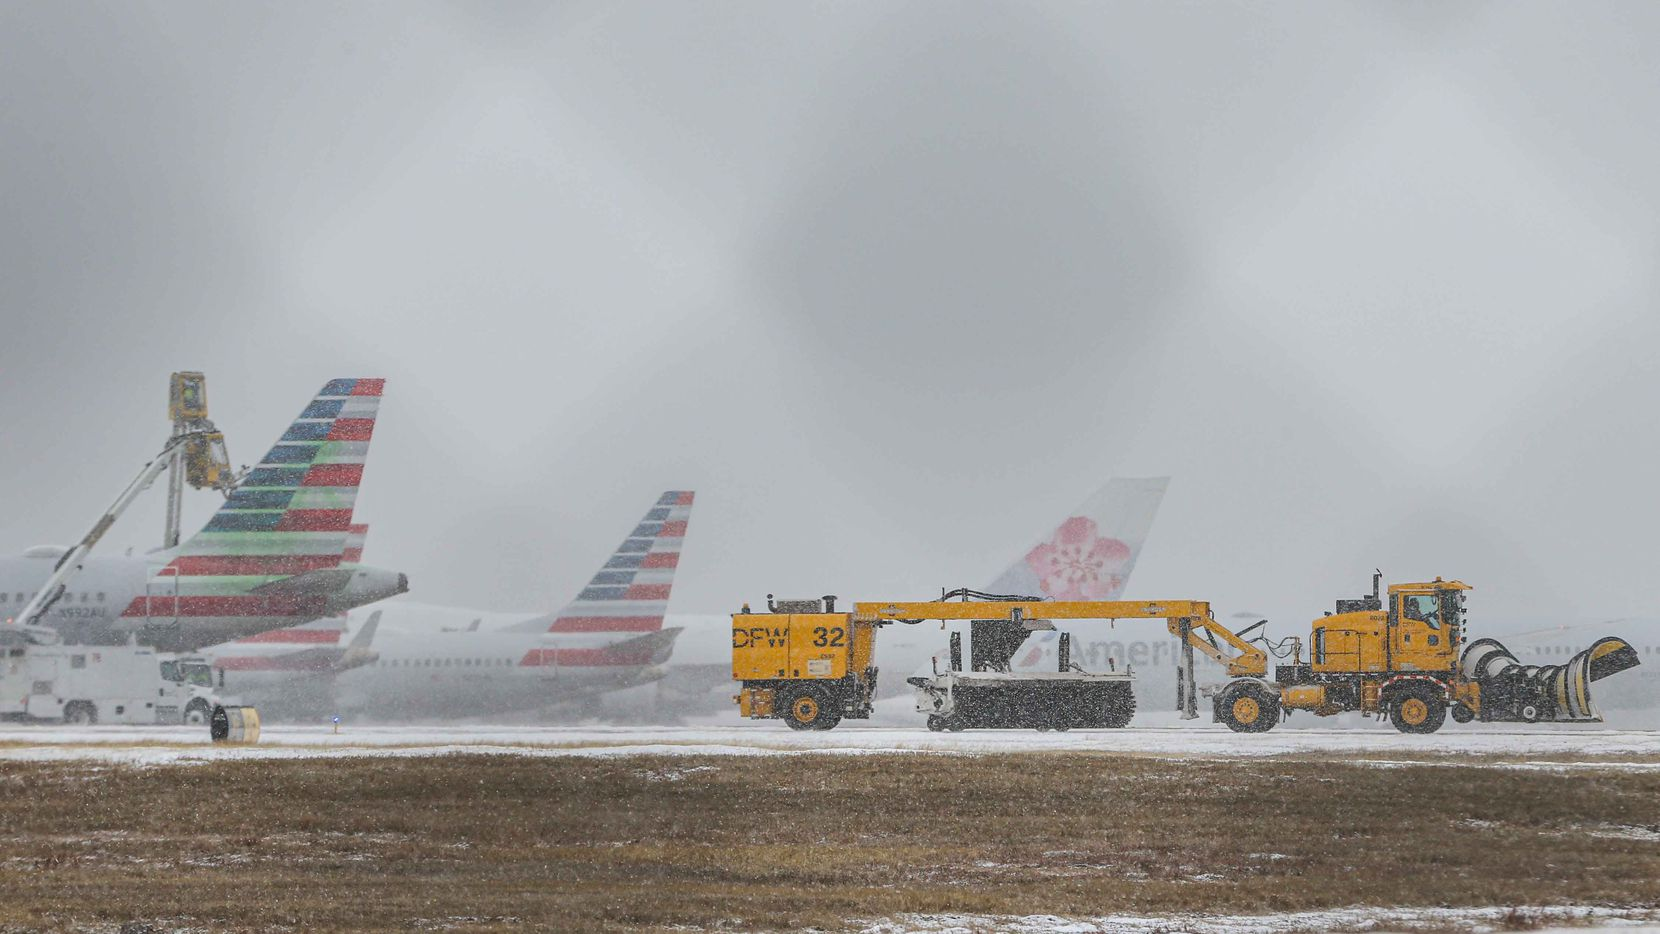 An American Airlines jets get inline to be de-iced at DFW International Airport before takeoff as winter flurries arrive in Irving on Sunday, February 14, 2021 ahead of major snowstorm. (Lola Gomez/The Dallas Morning News)